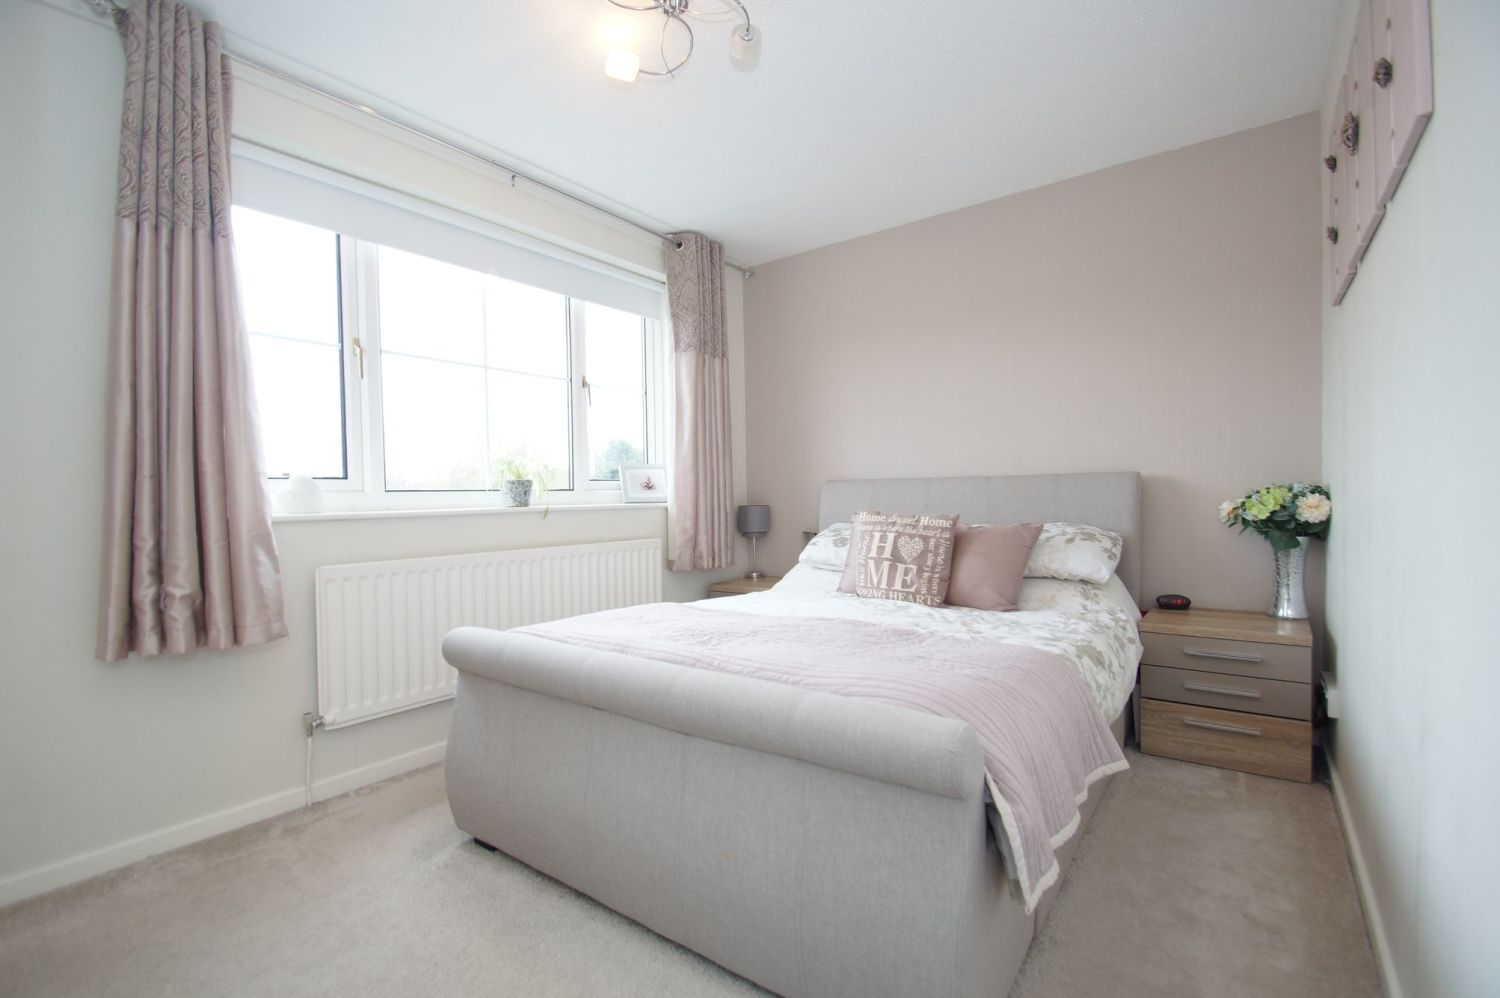 3 bed detached for sale in Painswick Close, Oakenshaw  - Property Image 9